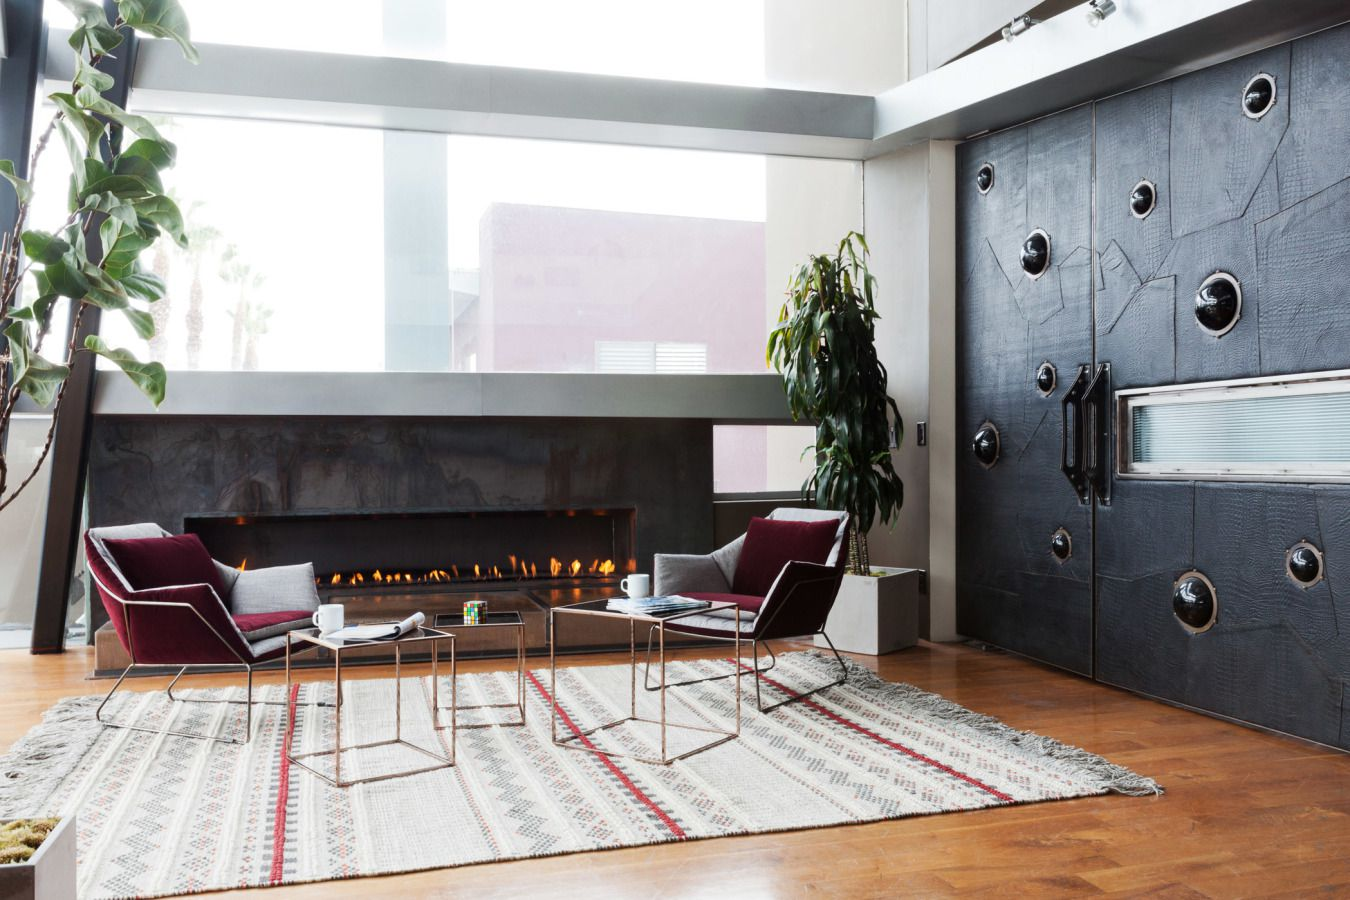 21 Colors That Always Look Beautiful With Black, According to Design Pros